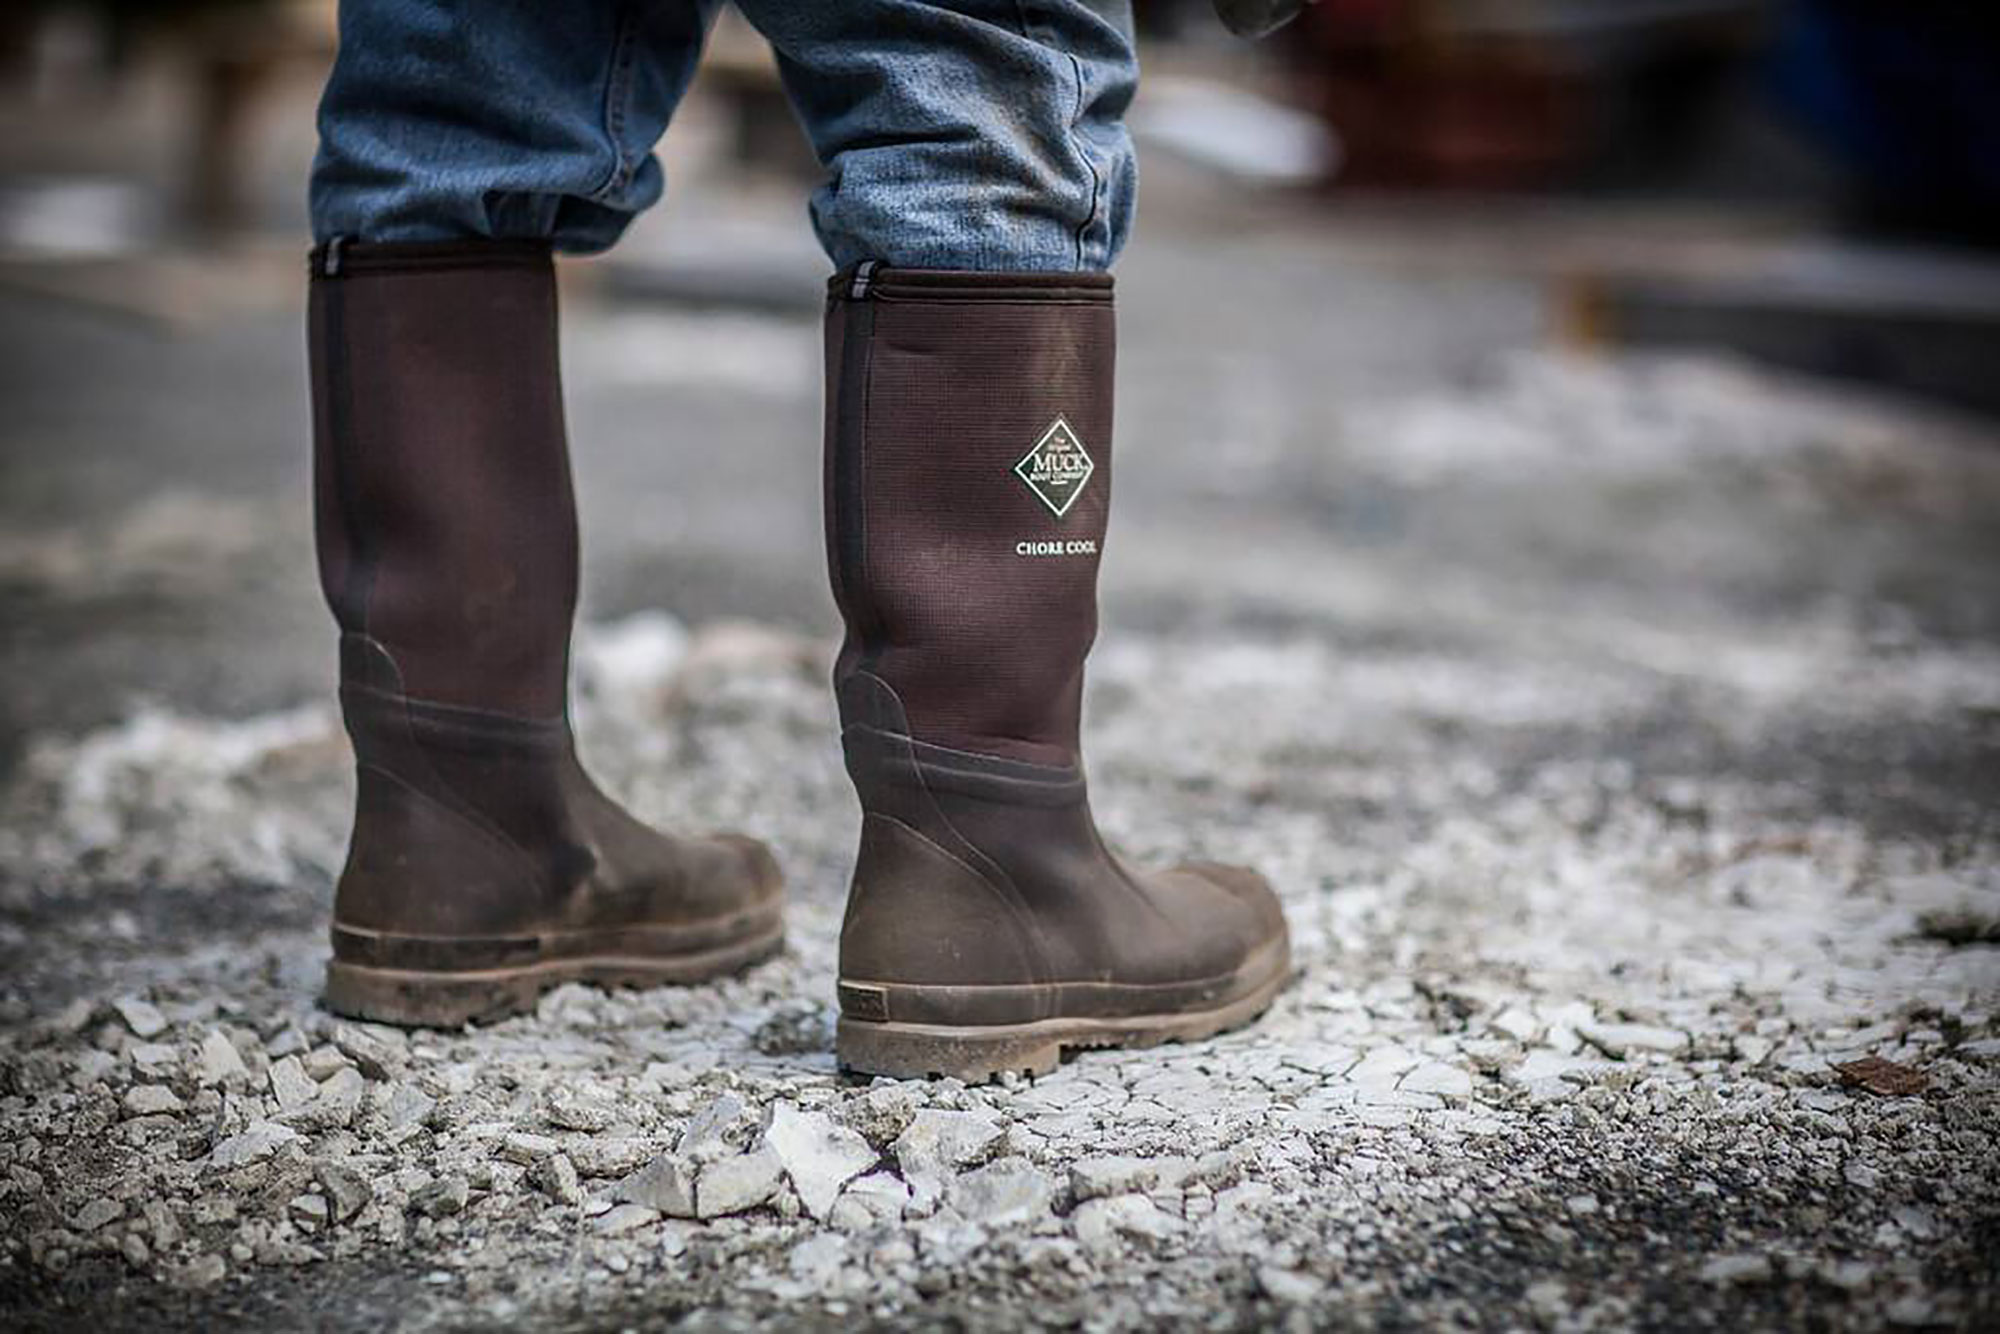 1005aca4652 Reviews: 5 of the best Muck boots for men | AGDAILY